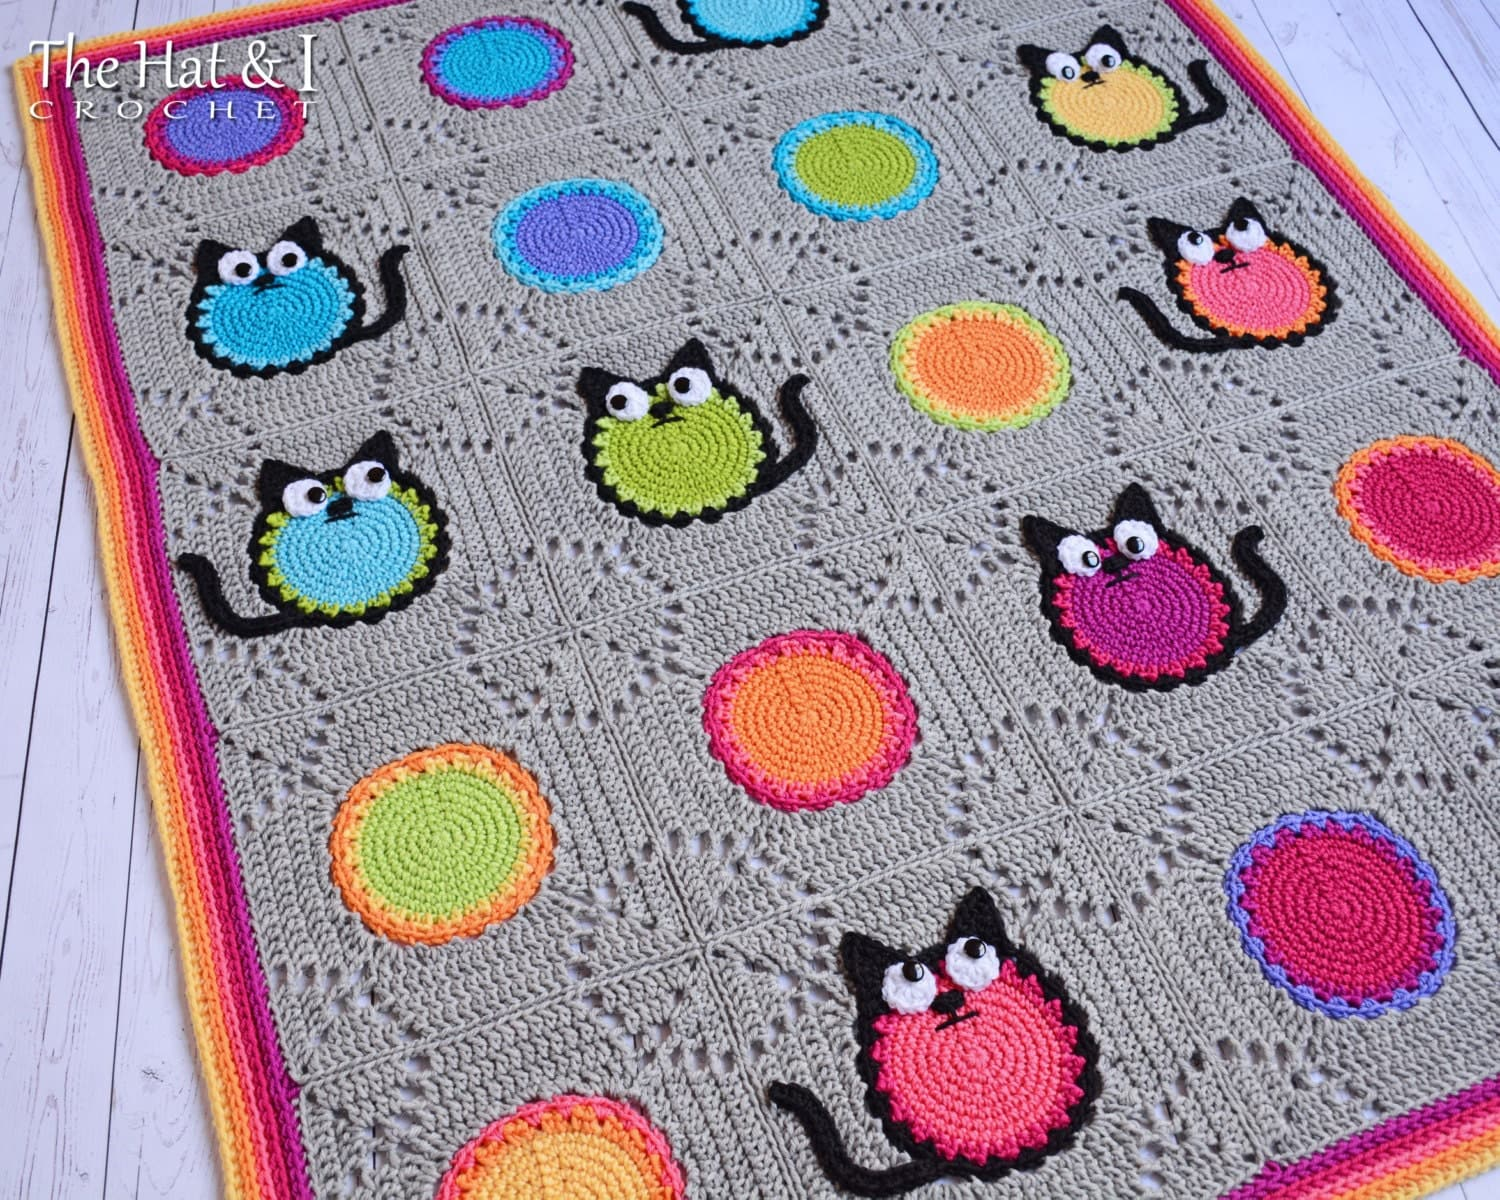 Crochet Cat Afghan Pattern : CROCHET PATTERN Cat Lover Blanket a colorful cat afghan